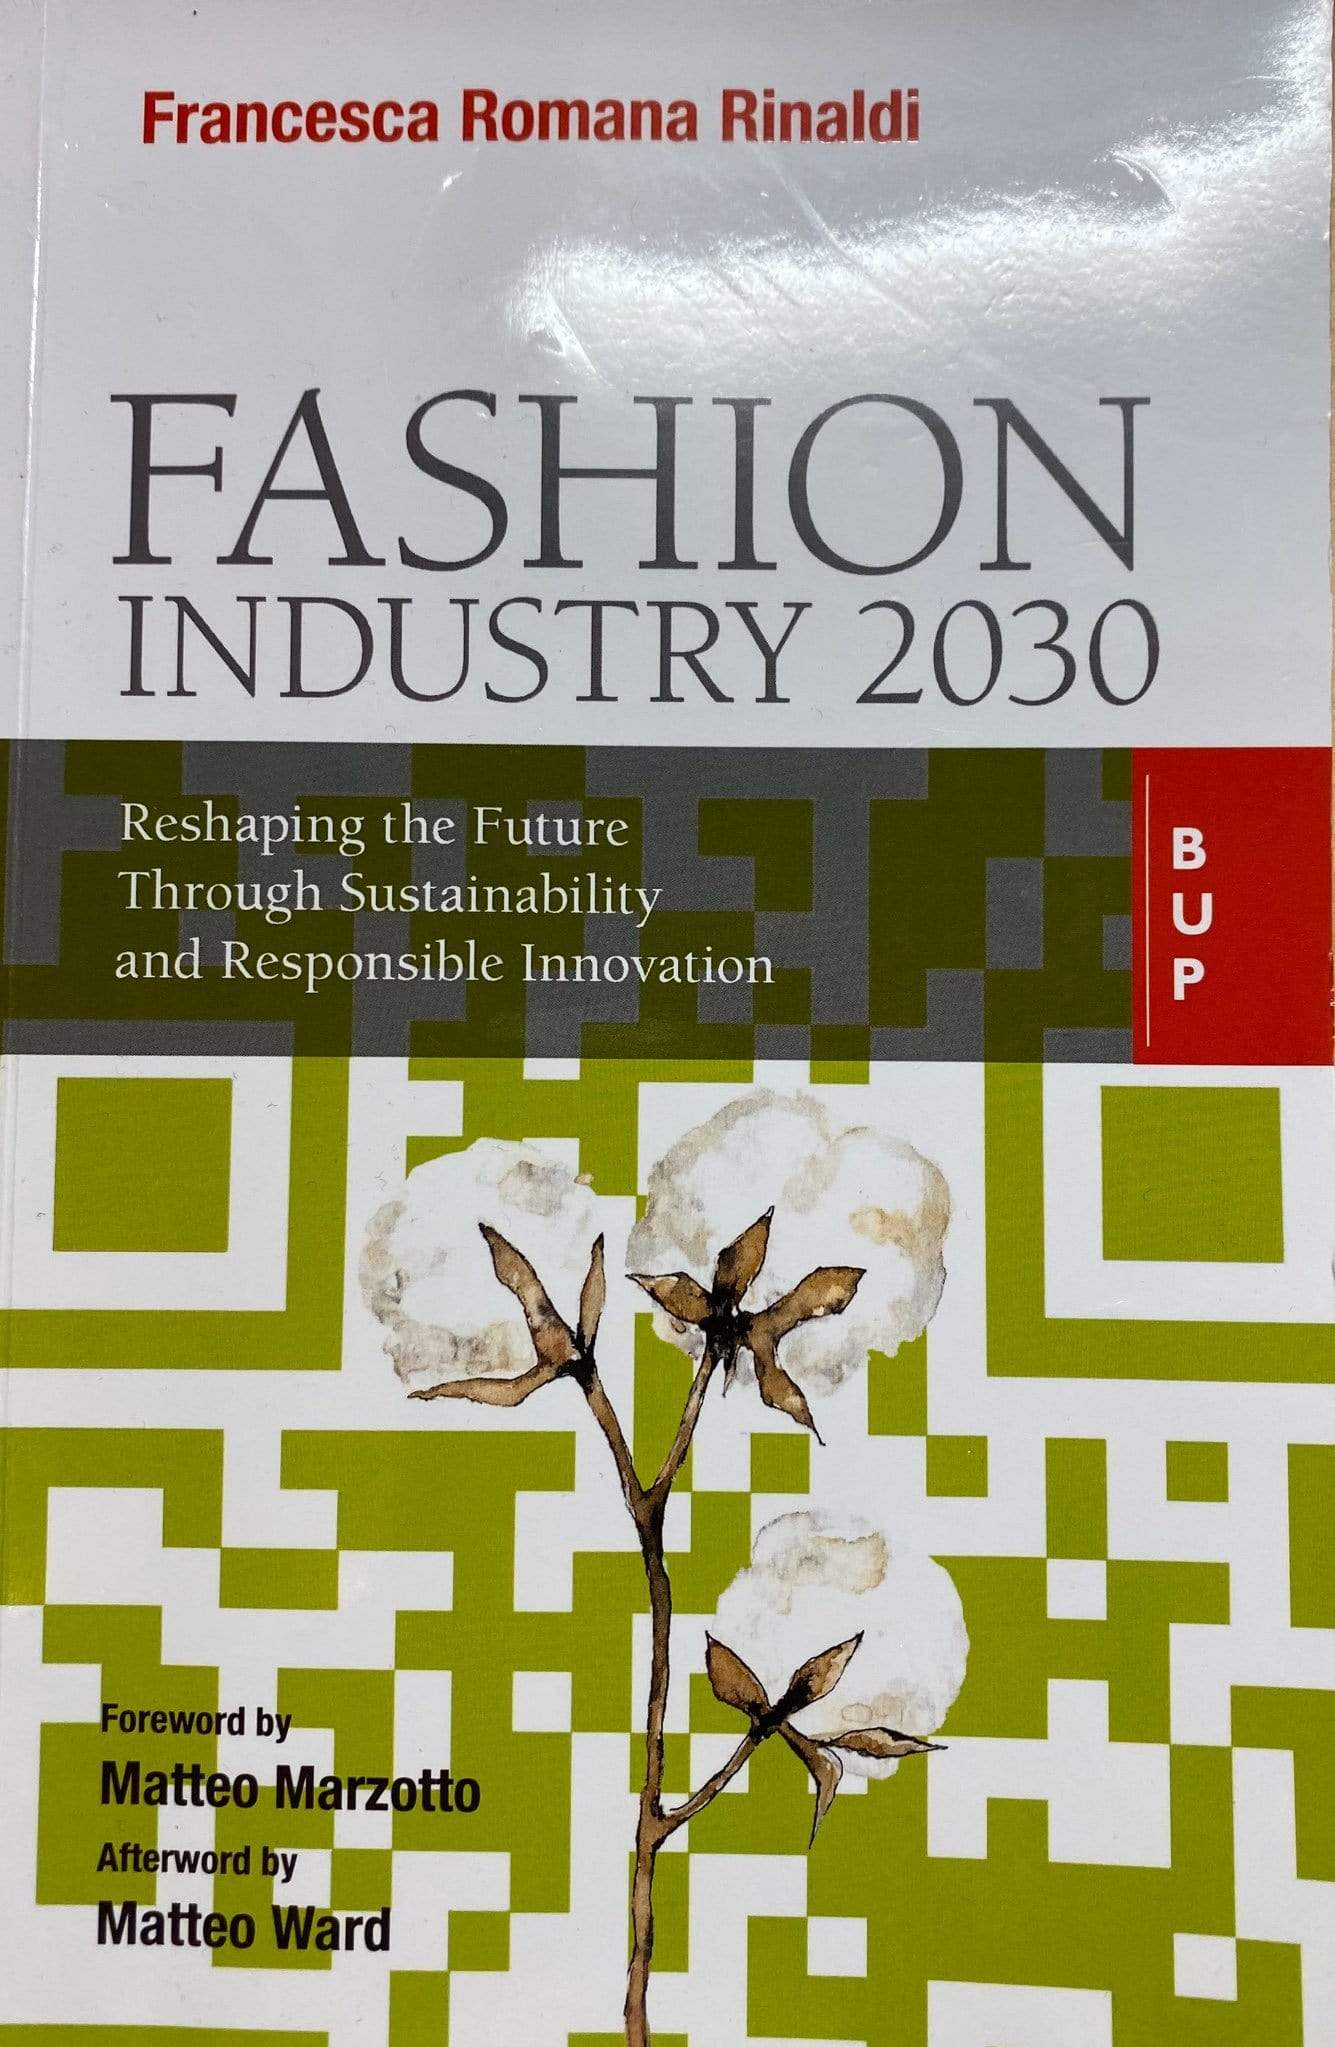 Slow Nature® accessory Fashion Industry 2030: Reshaping the Future Through Sustainability and Responsible Innovation sustainable fashion ethical fashion